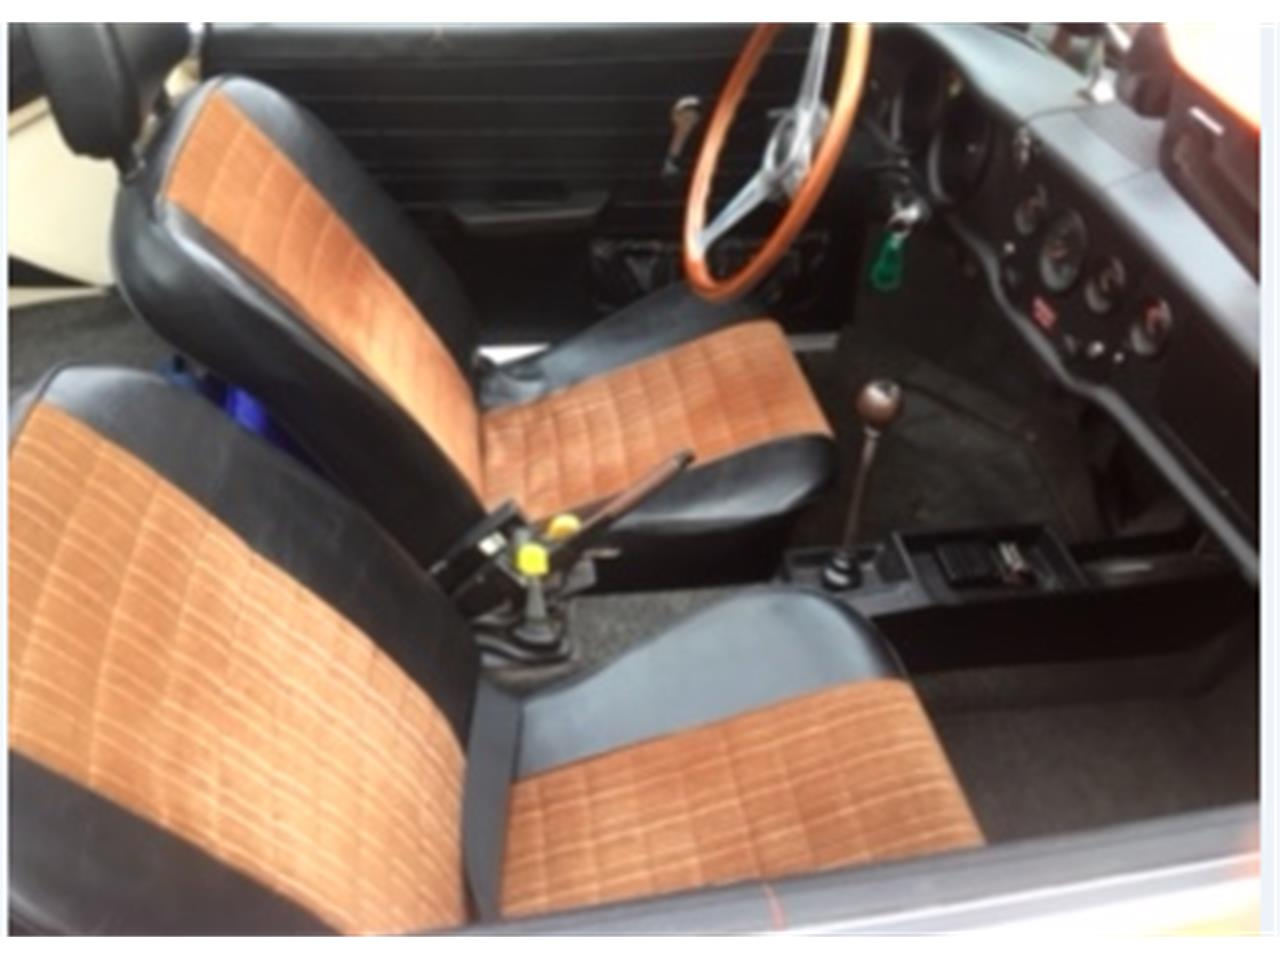 Large Picture of 1974 Volkswagen Karmann Ghia located in Michigan - $17,000.00 Offered by a Private Seller - HRTY